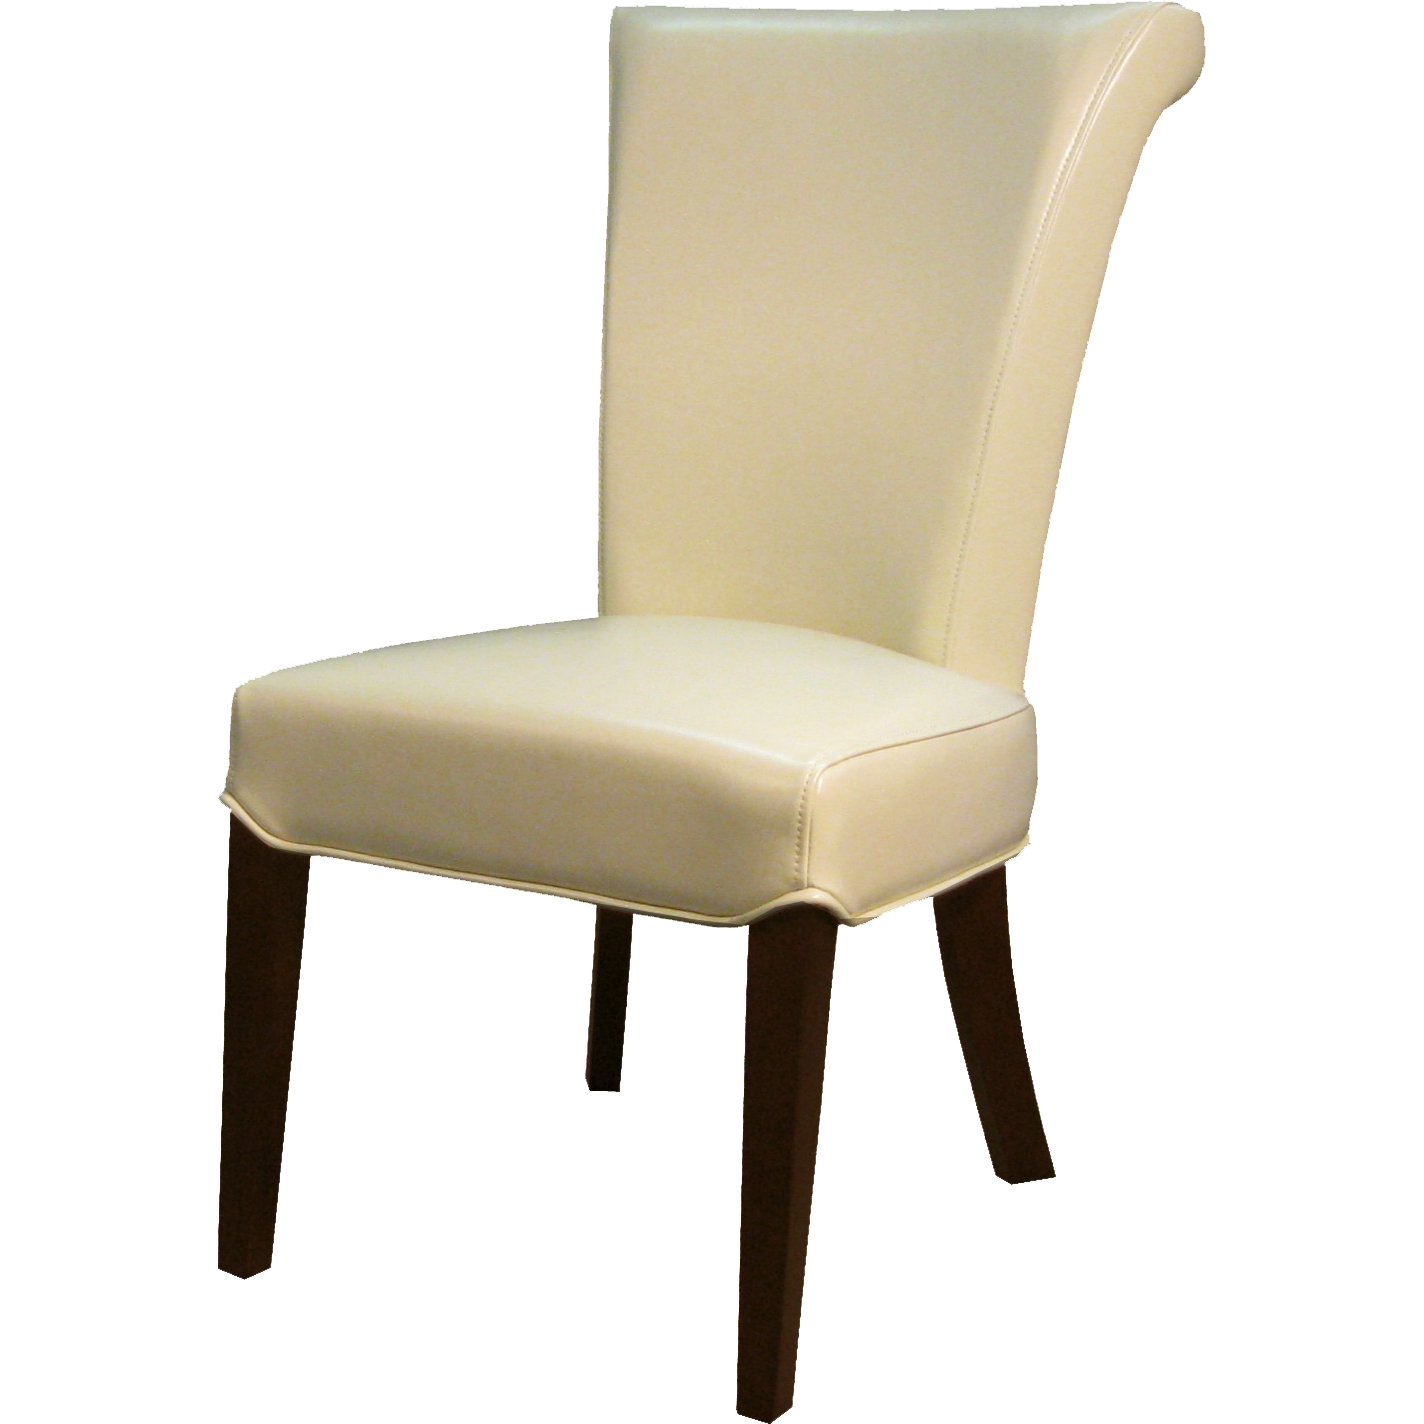 New Pacific Direct 148b 2050 Bentley Dining Chair In Beige